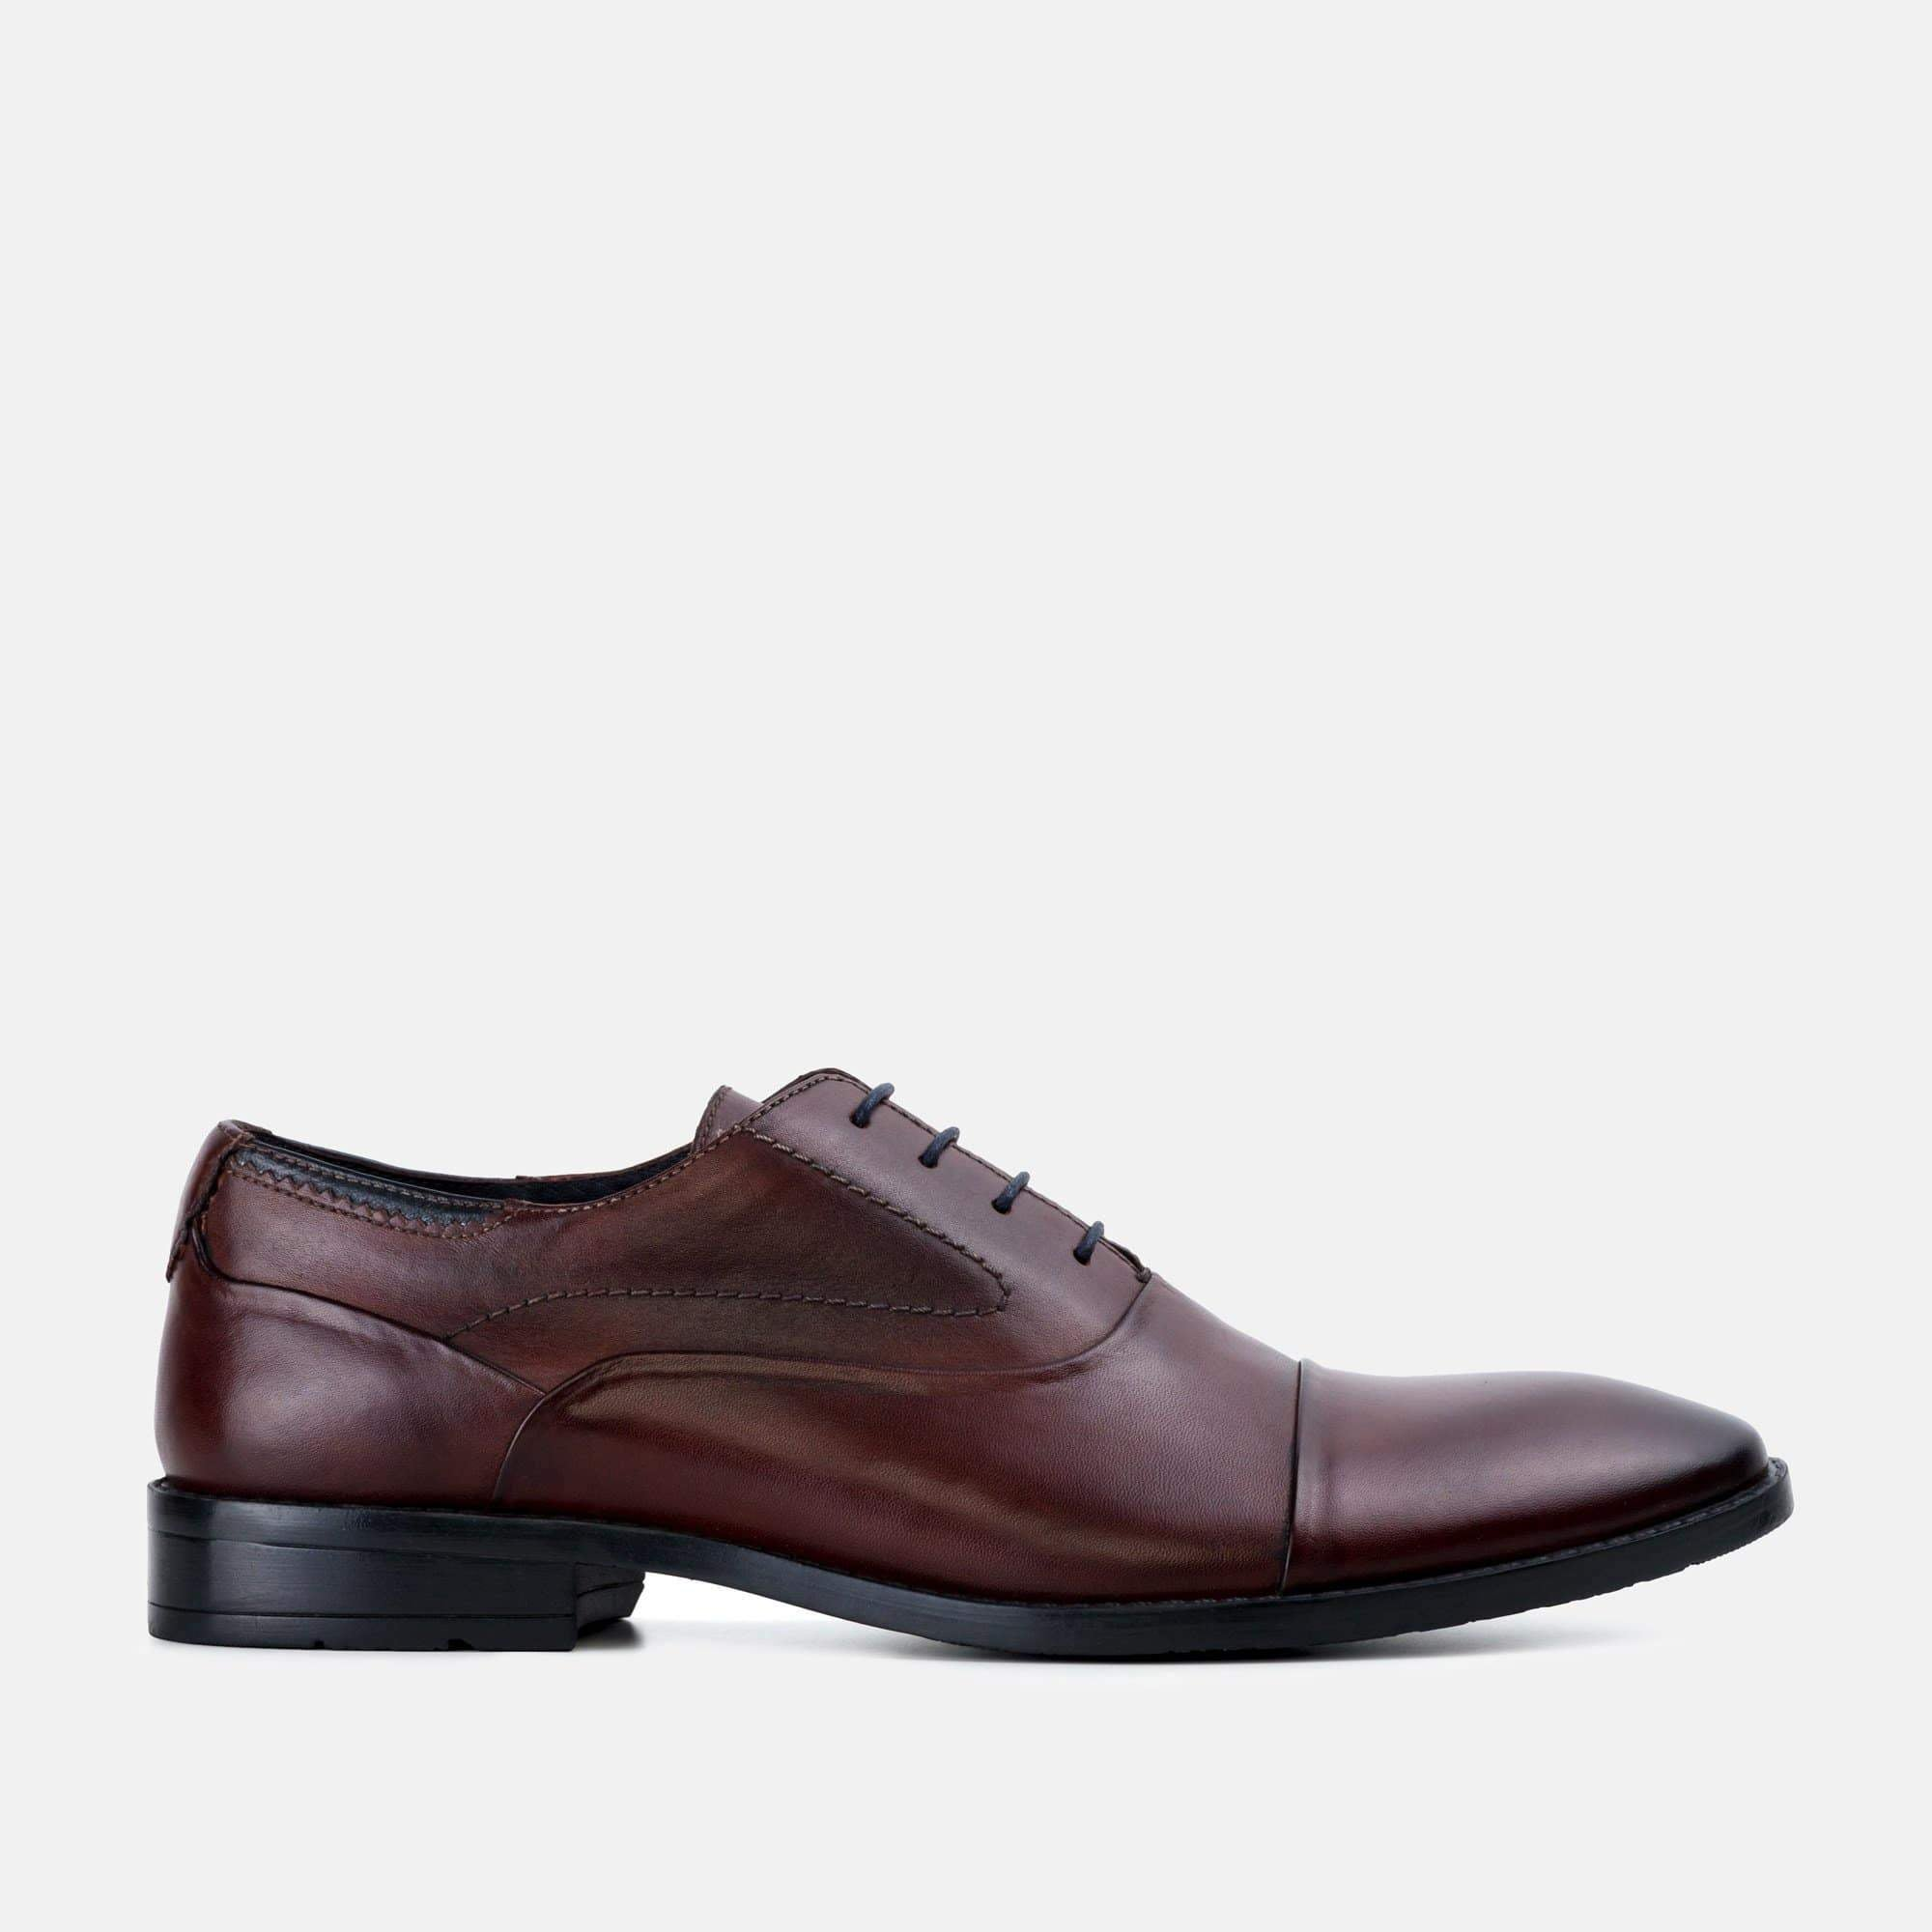 Goodwin Smith Footwear Irving Bordo Classic Leather Oxford Shoe